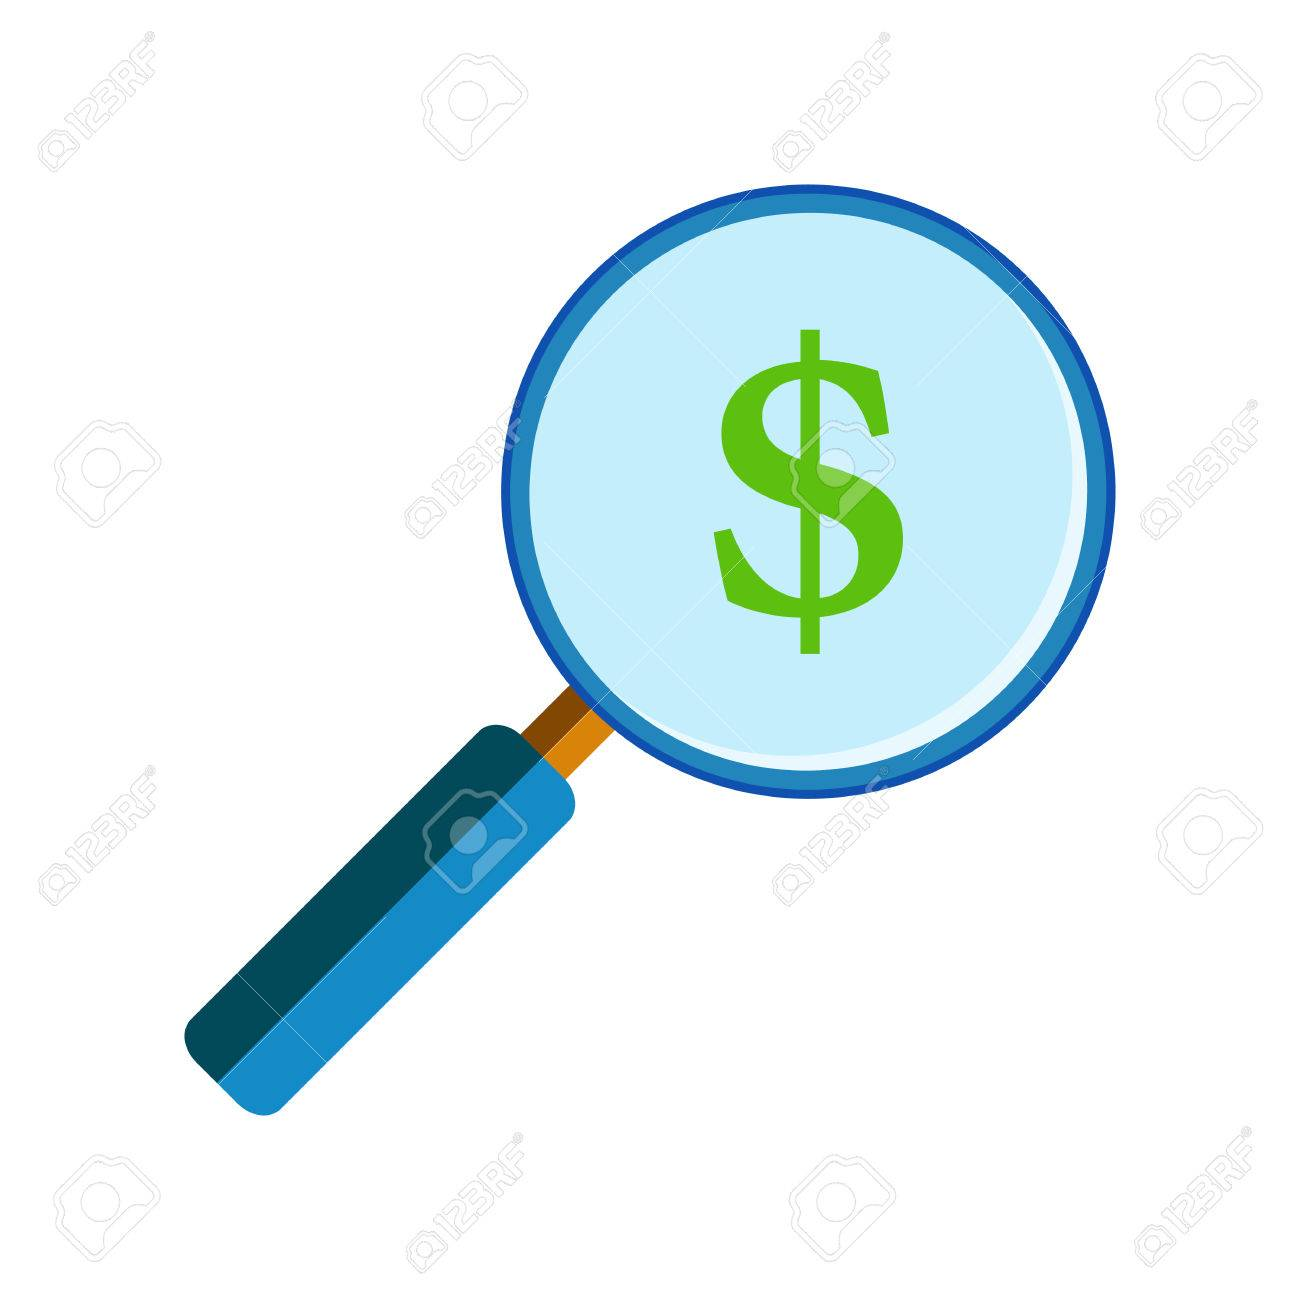 hight resolution of blue magnifying glass with green dollar sign on white background flat style benefit and